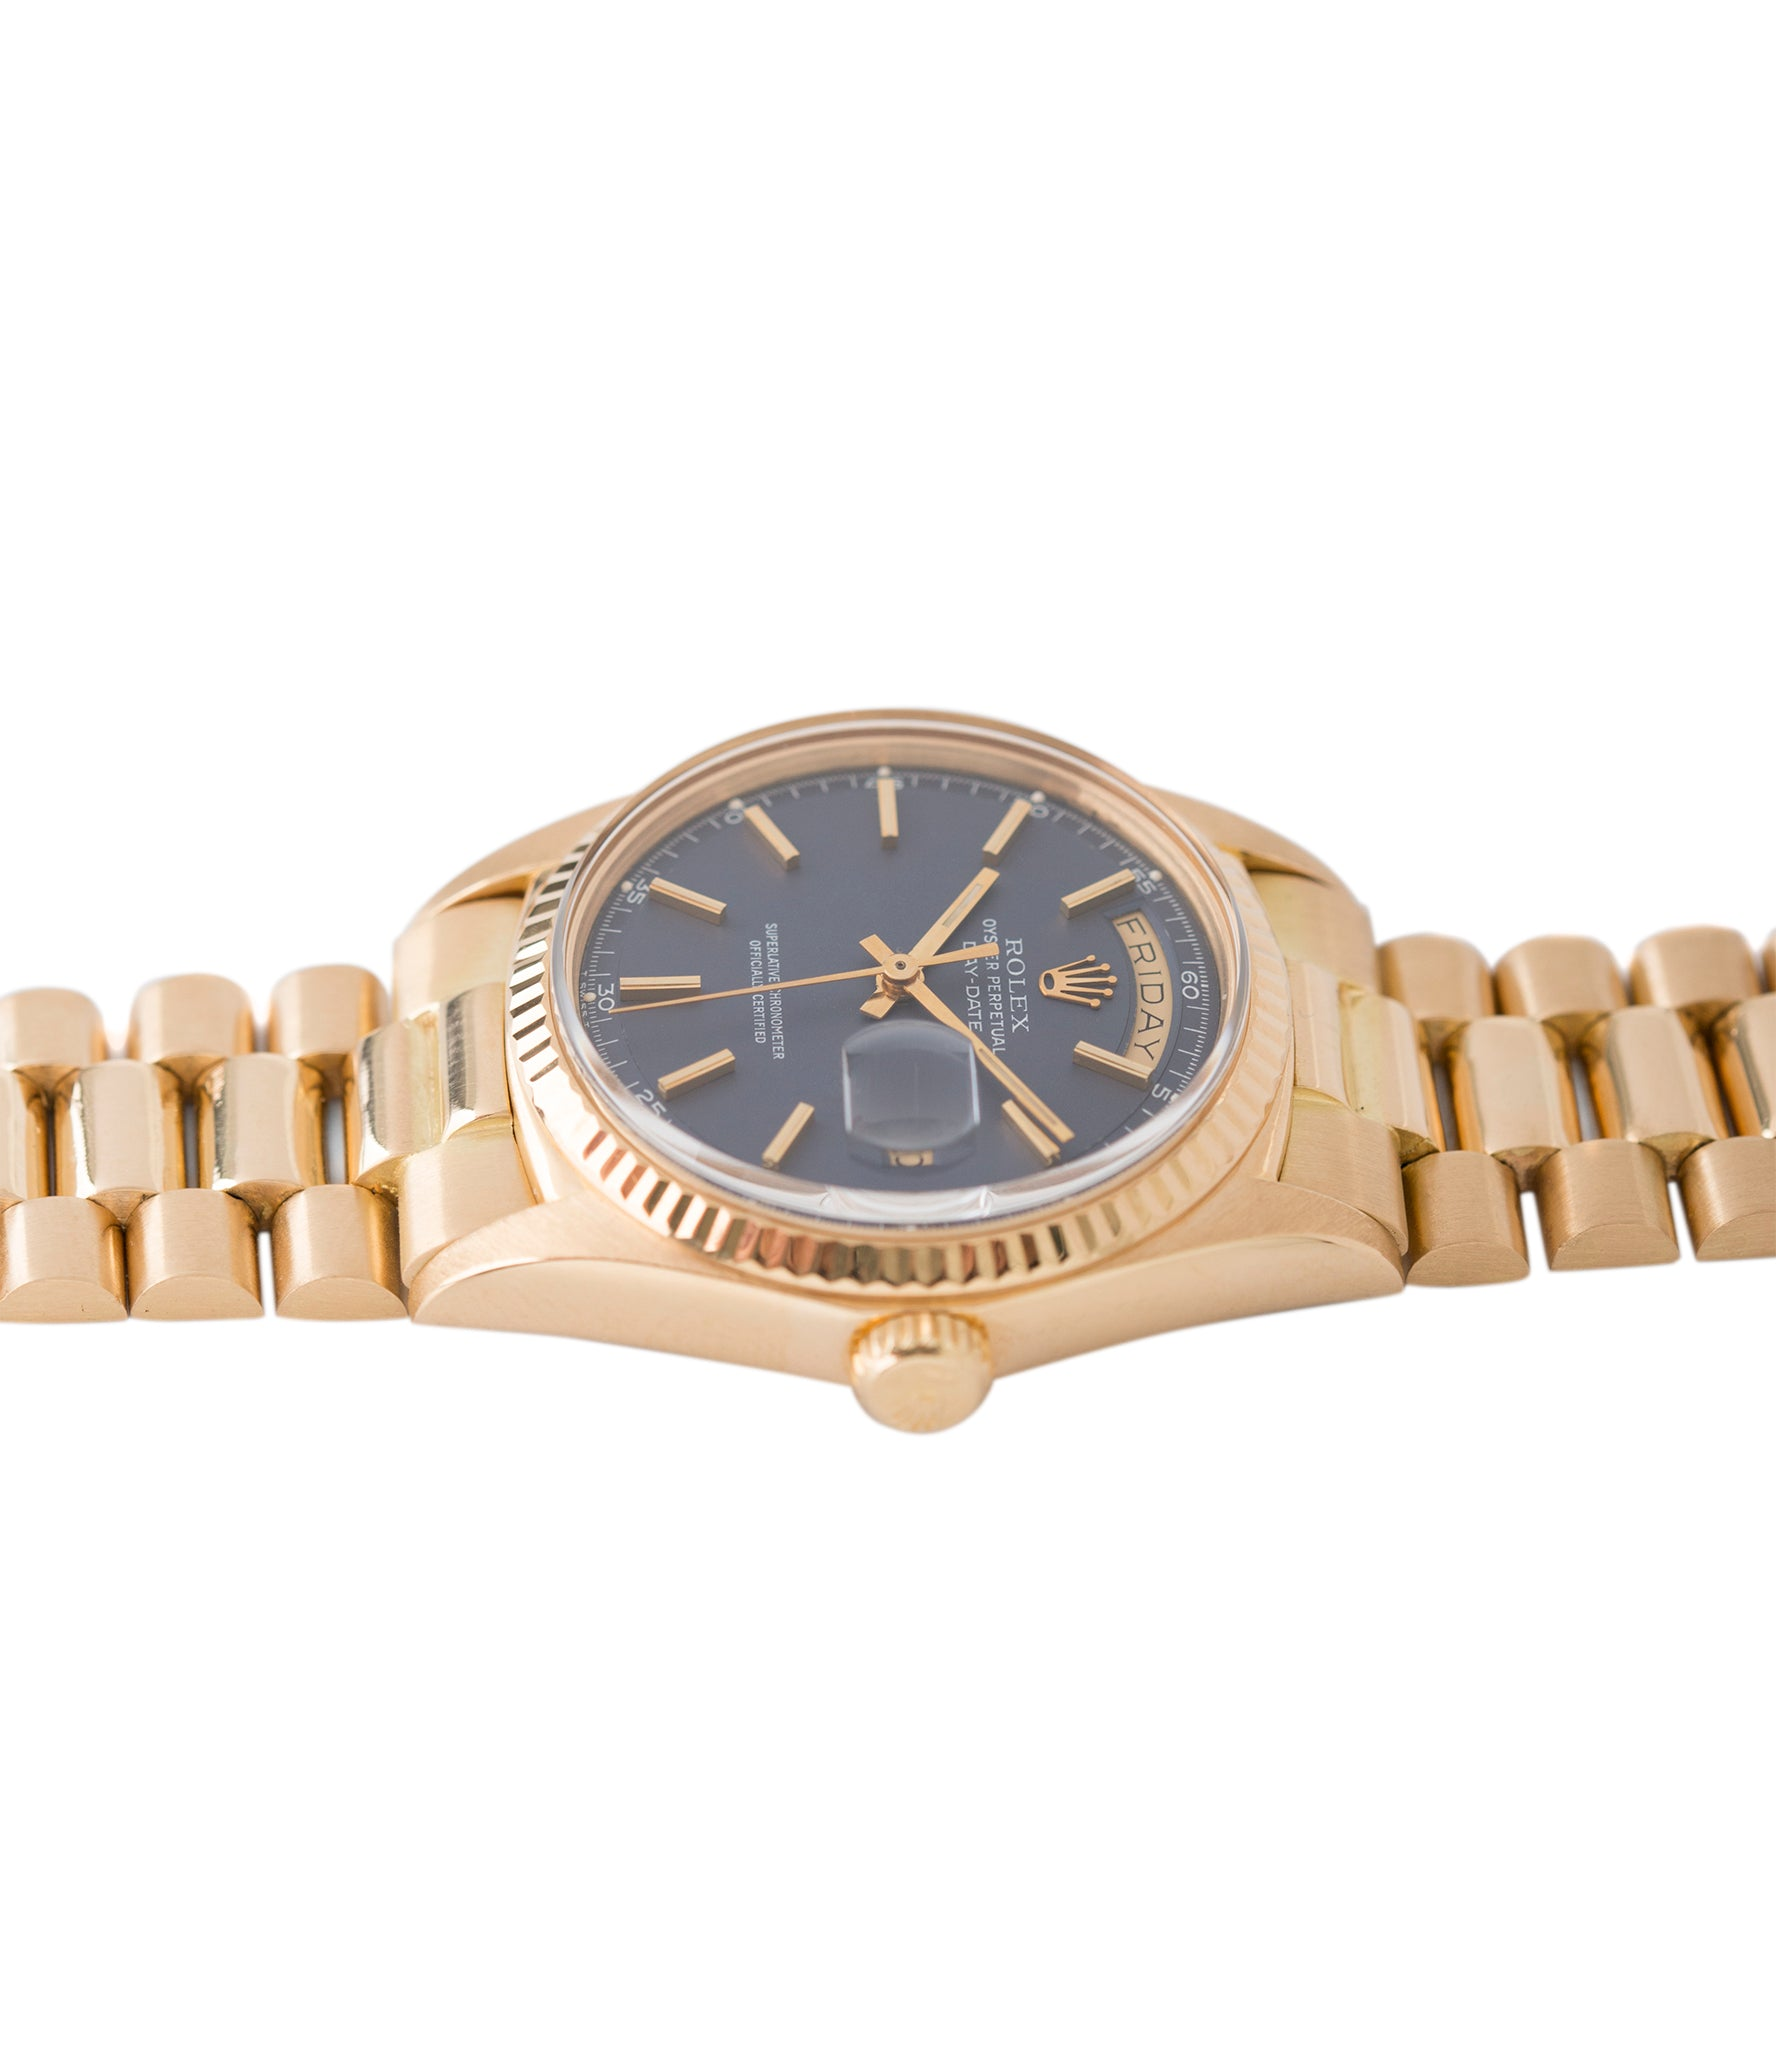 for sale blue dial Day-Date vintage Rolex 1803 Oyster Perpetual Cal. 1556 gold watch for sale online at A Collected Man London UK specialist of rare watches